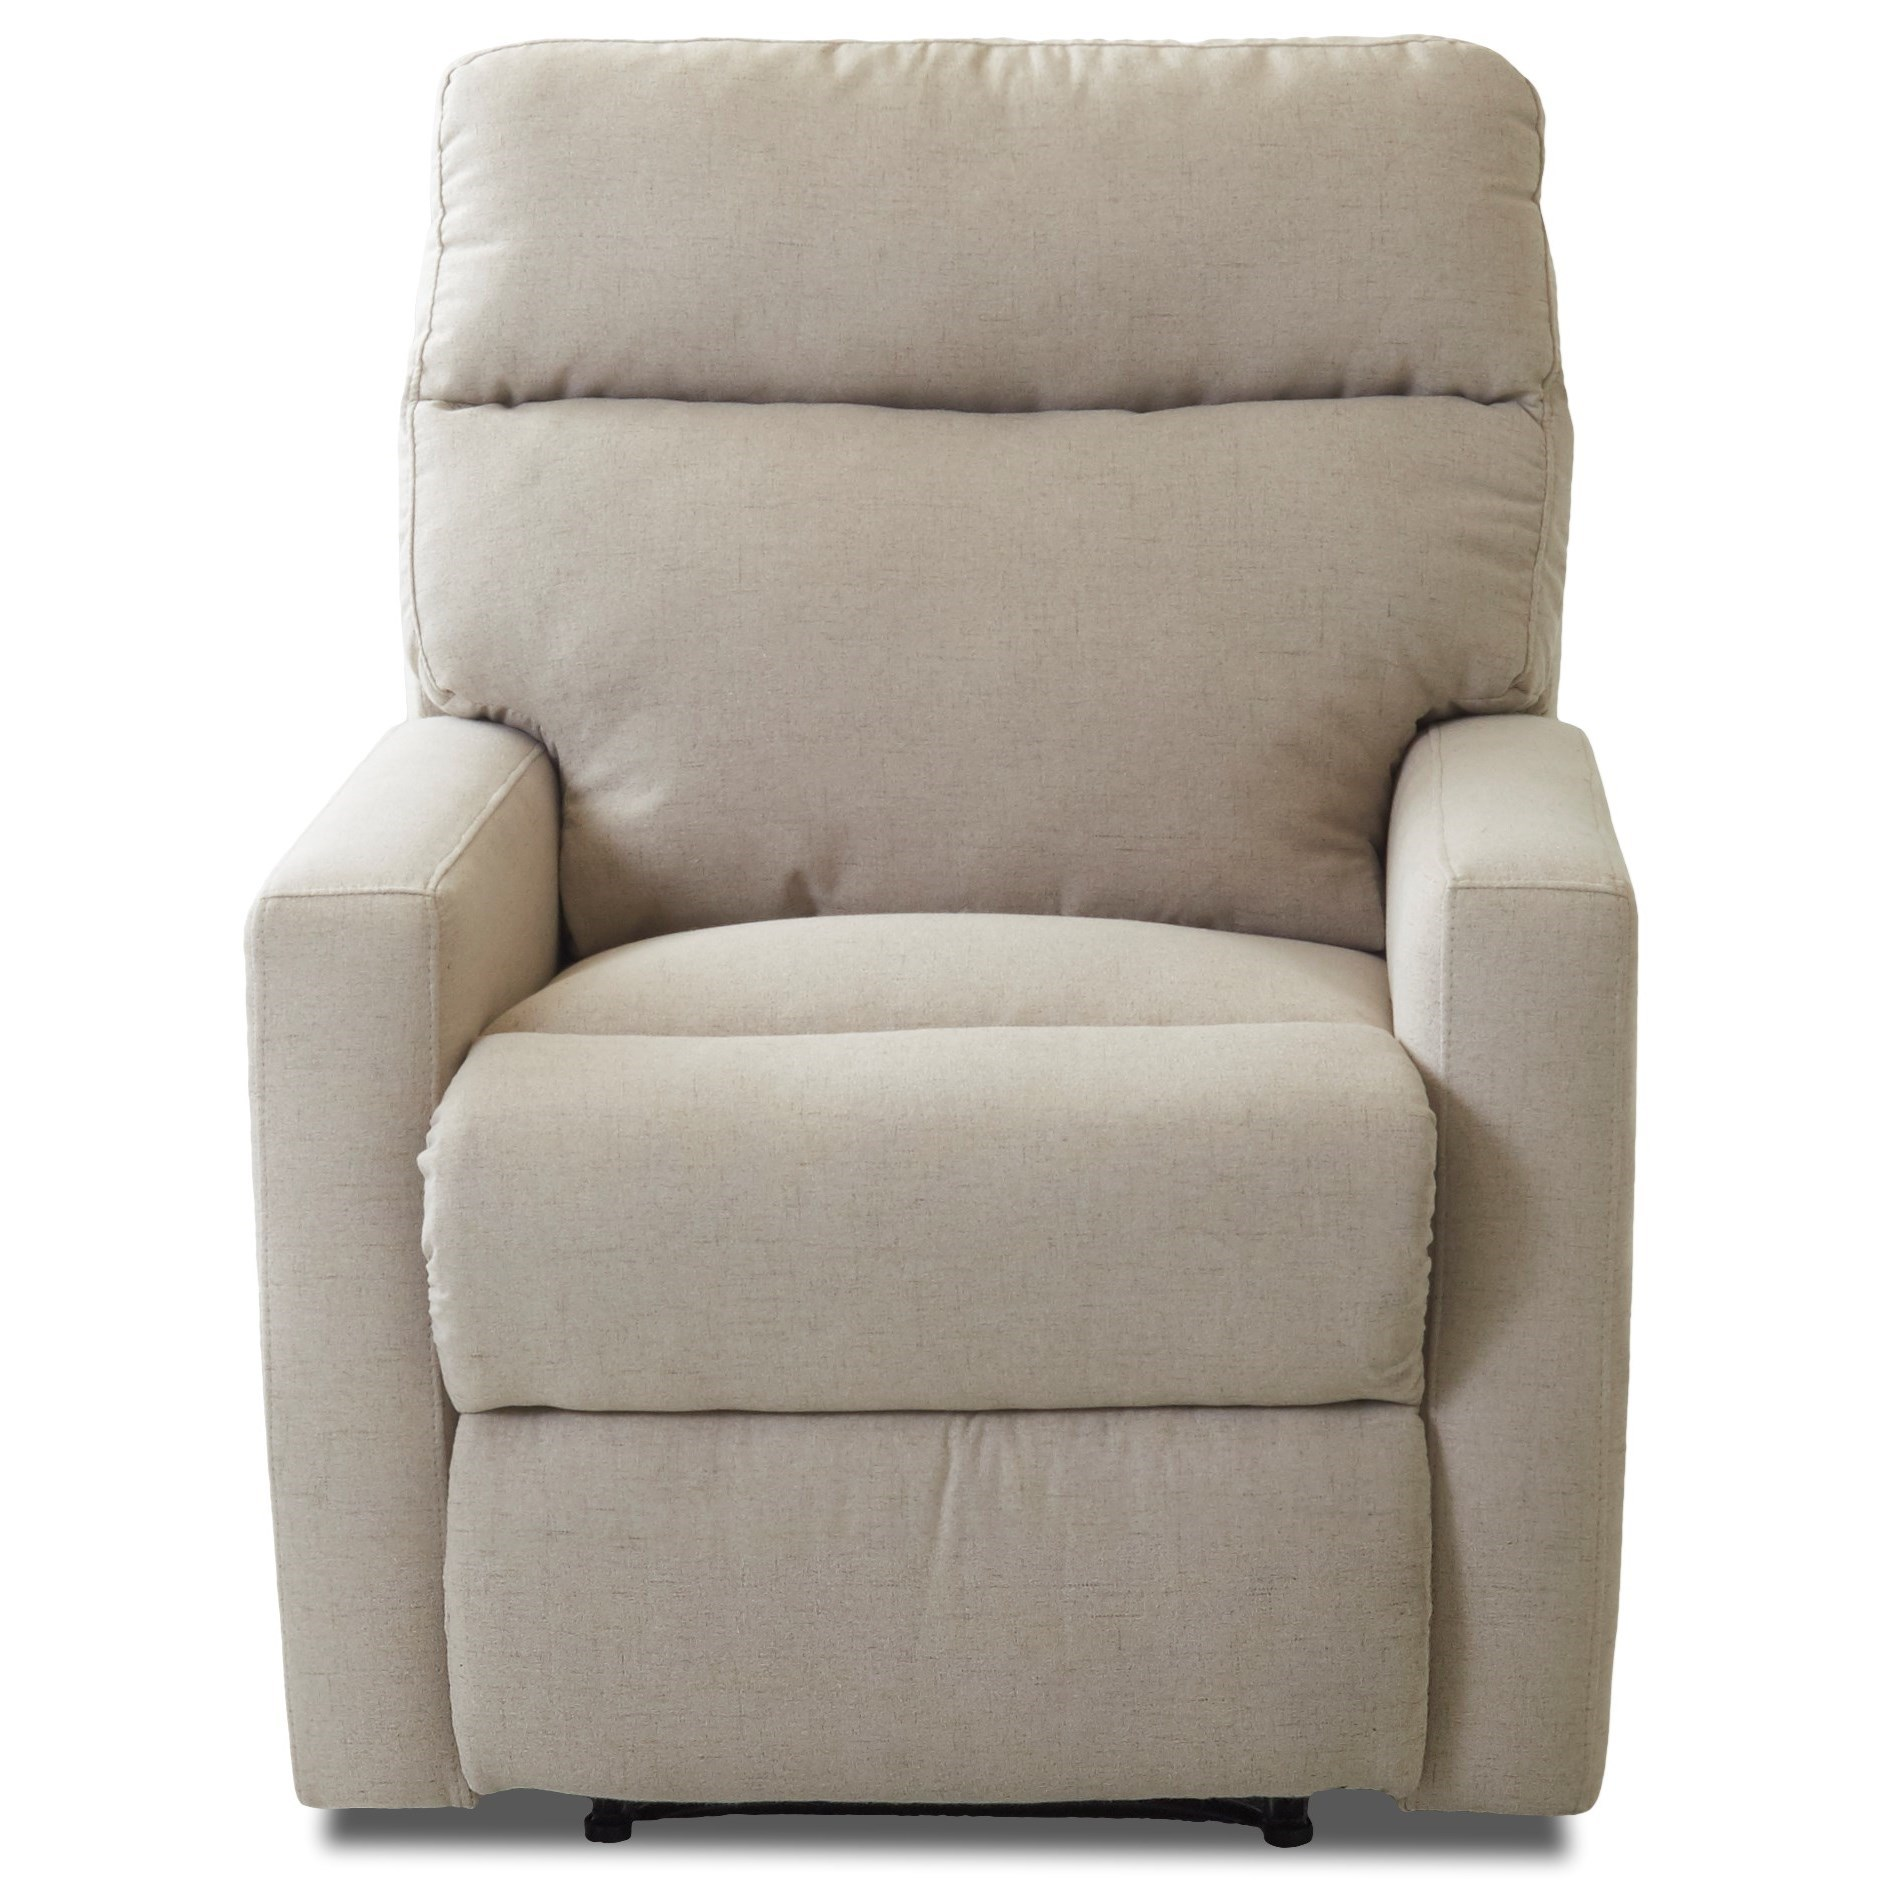 Daphne Swivel Rocking Reclining Chair by Klaussner at Johnny Janosik